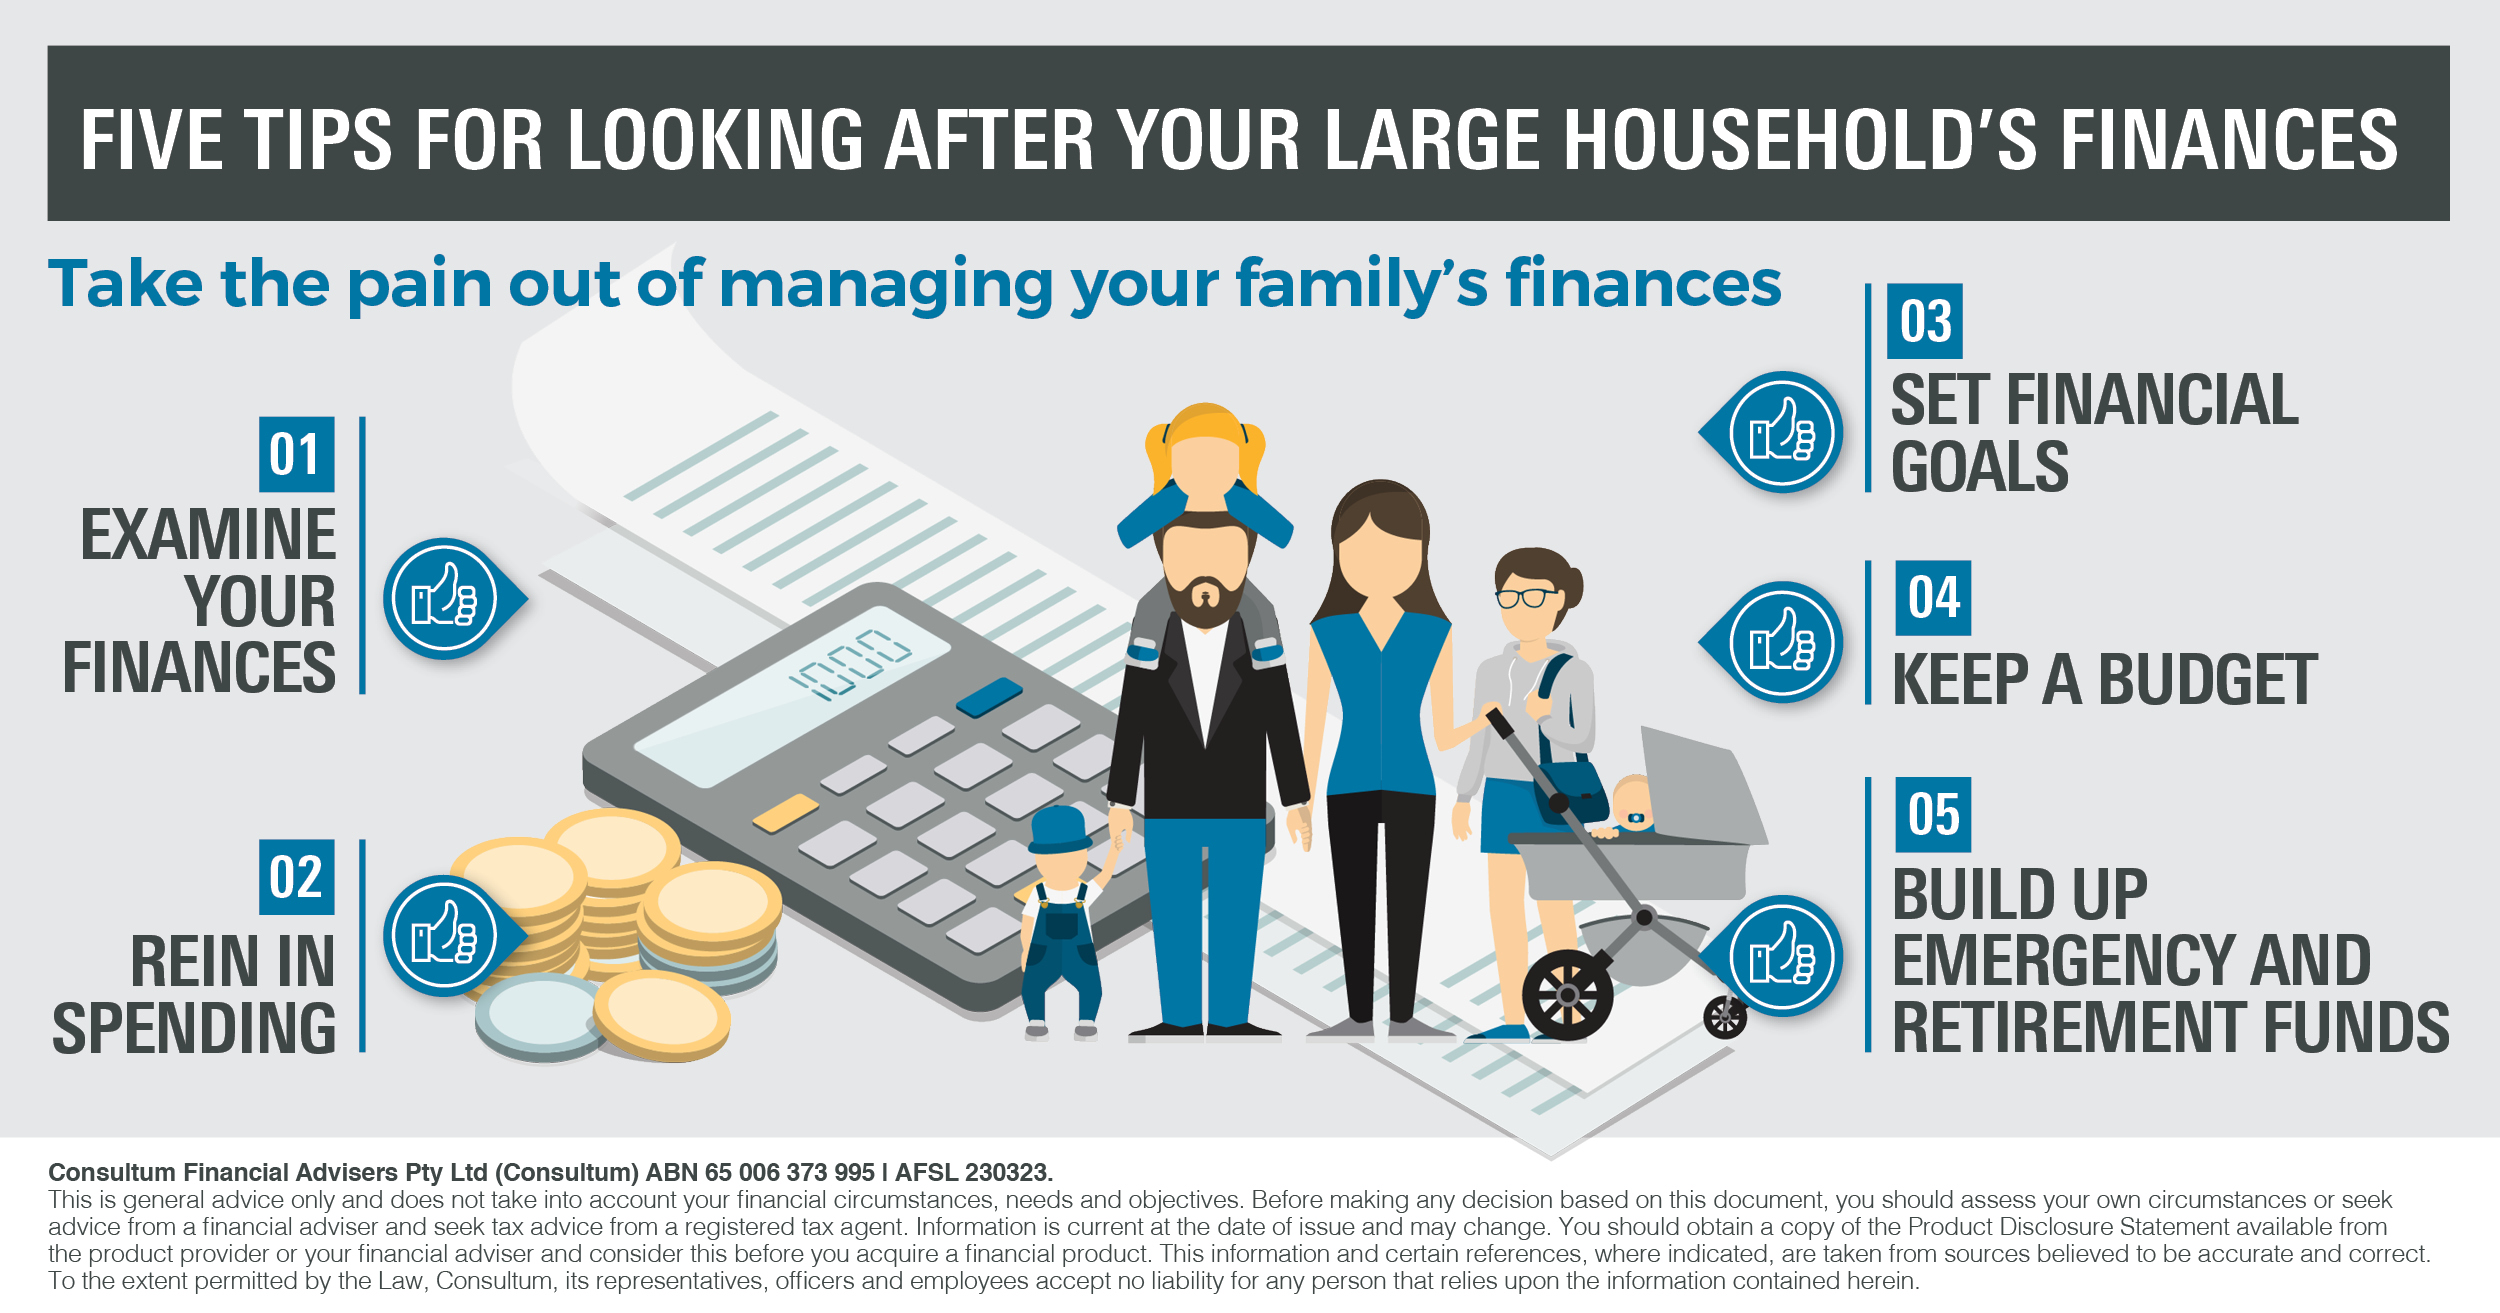 Infographic_Consultum_Five tips for looking after your large household's finances